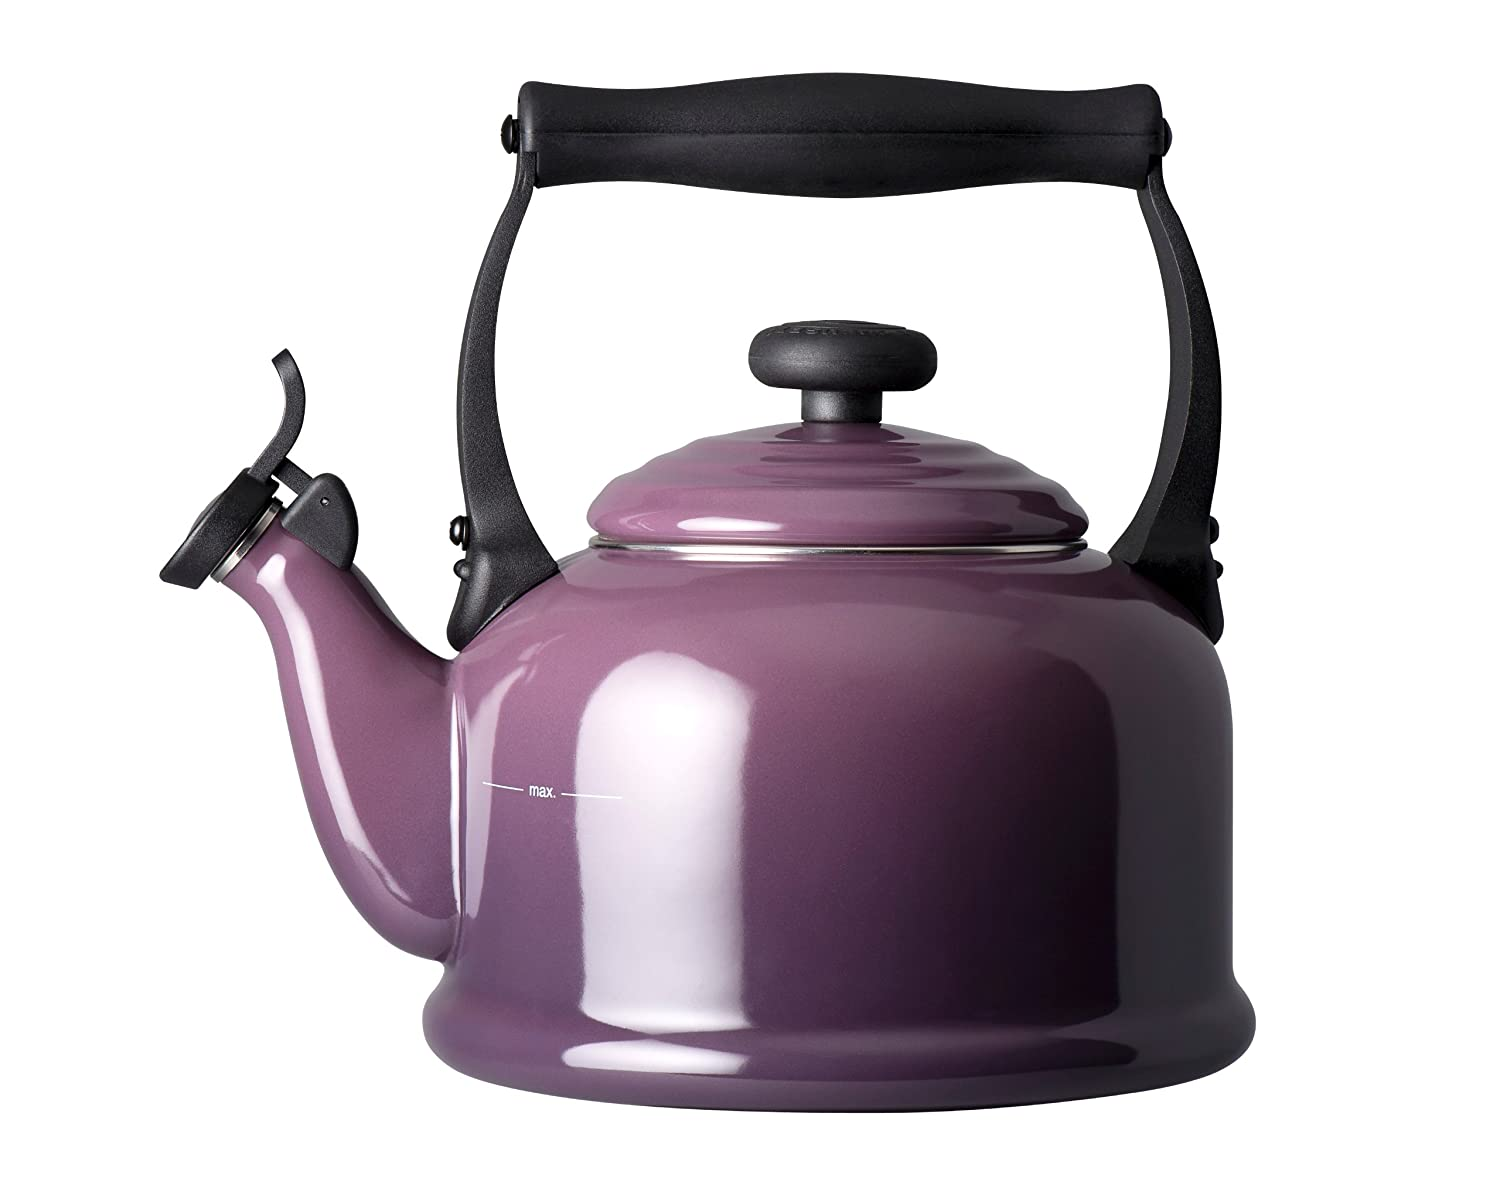 Le Creuset 2.1 Litre Traditional Kettle with Whistle